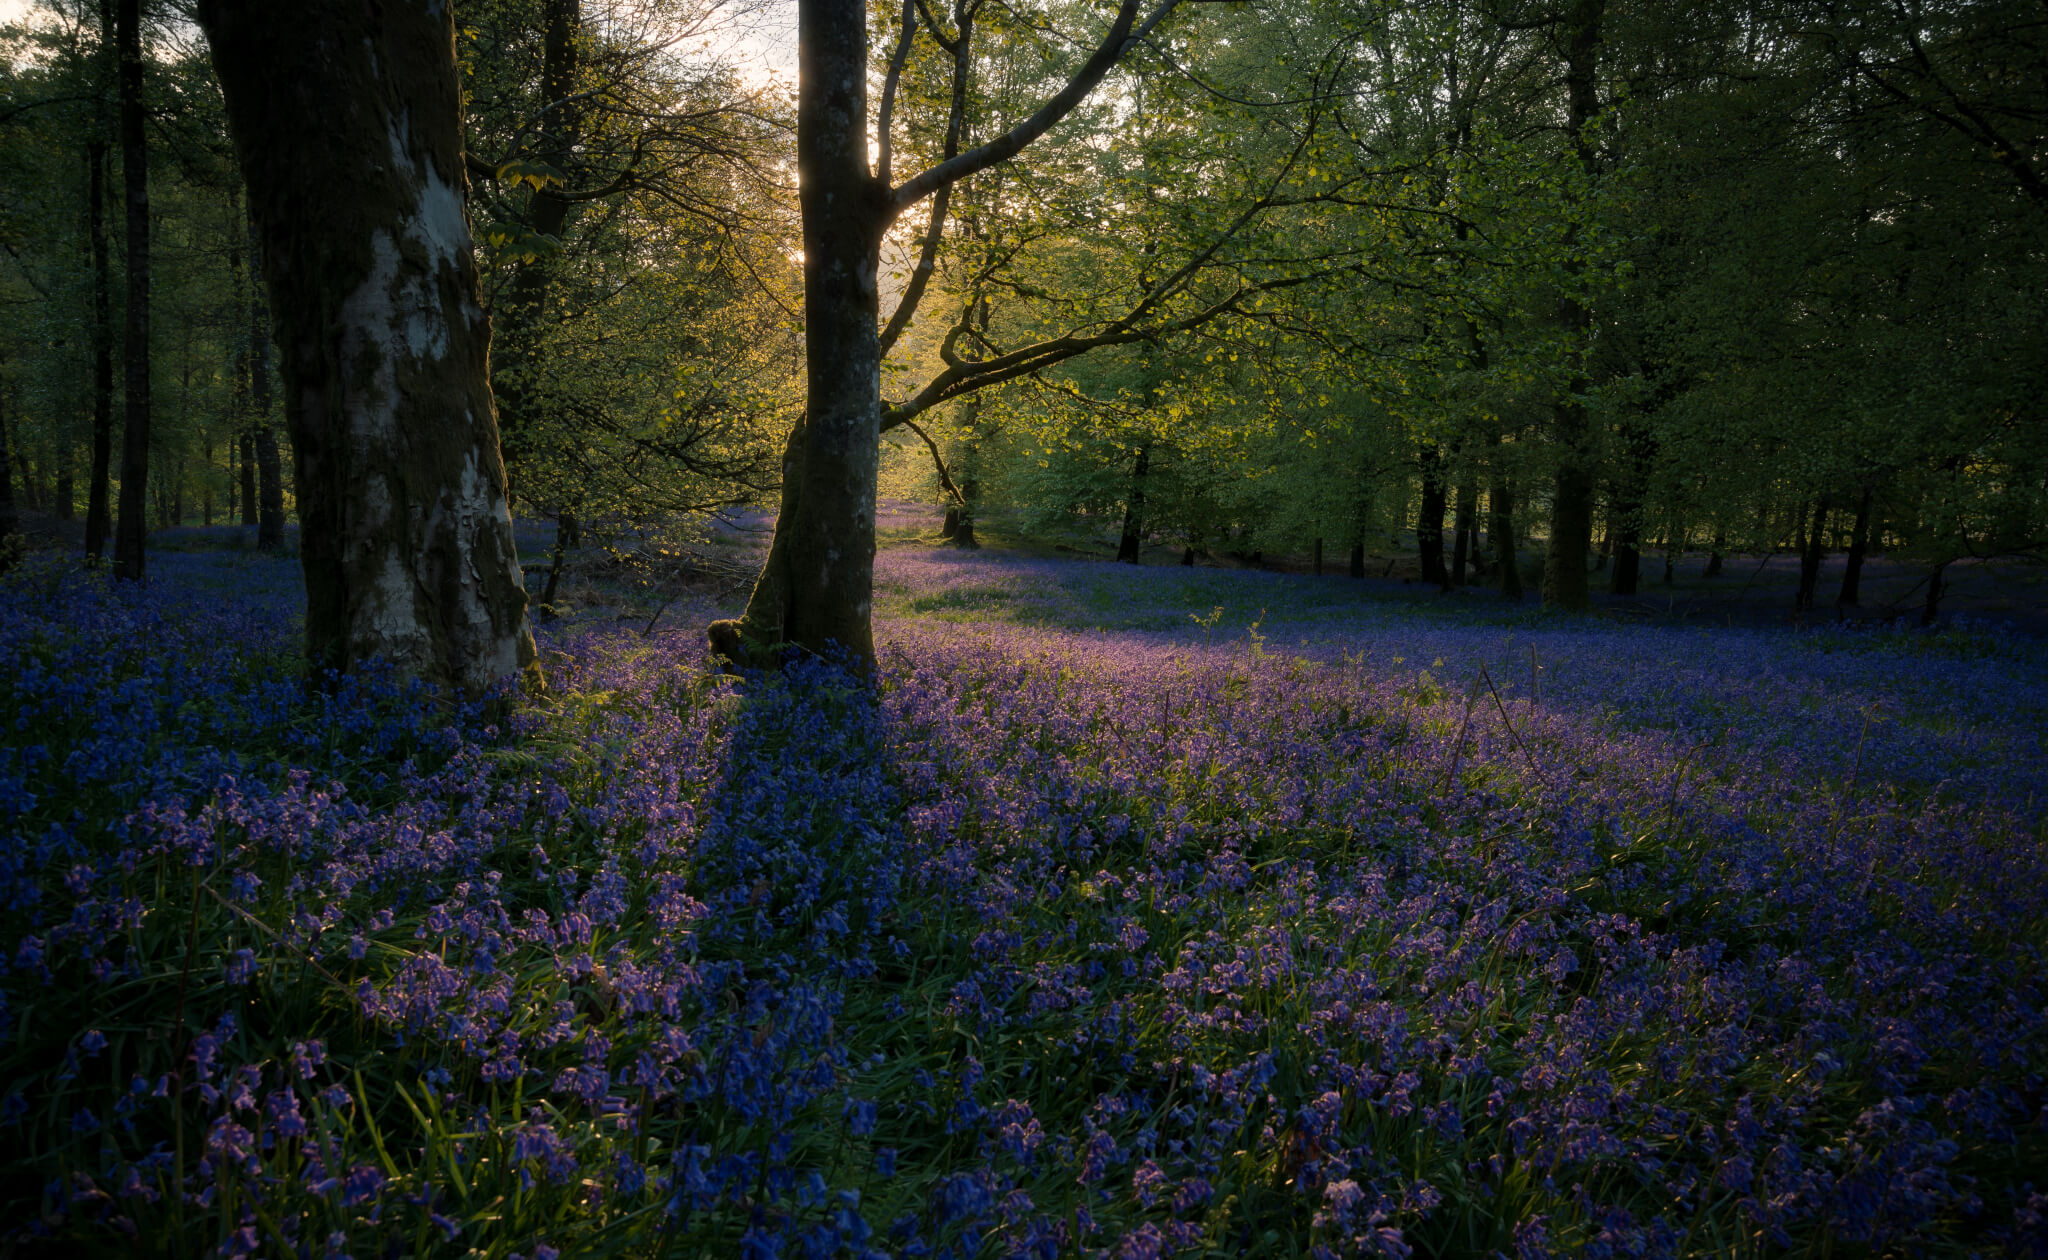 Forest and bluebells